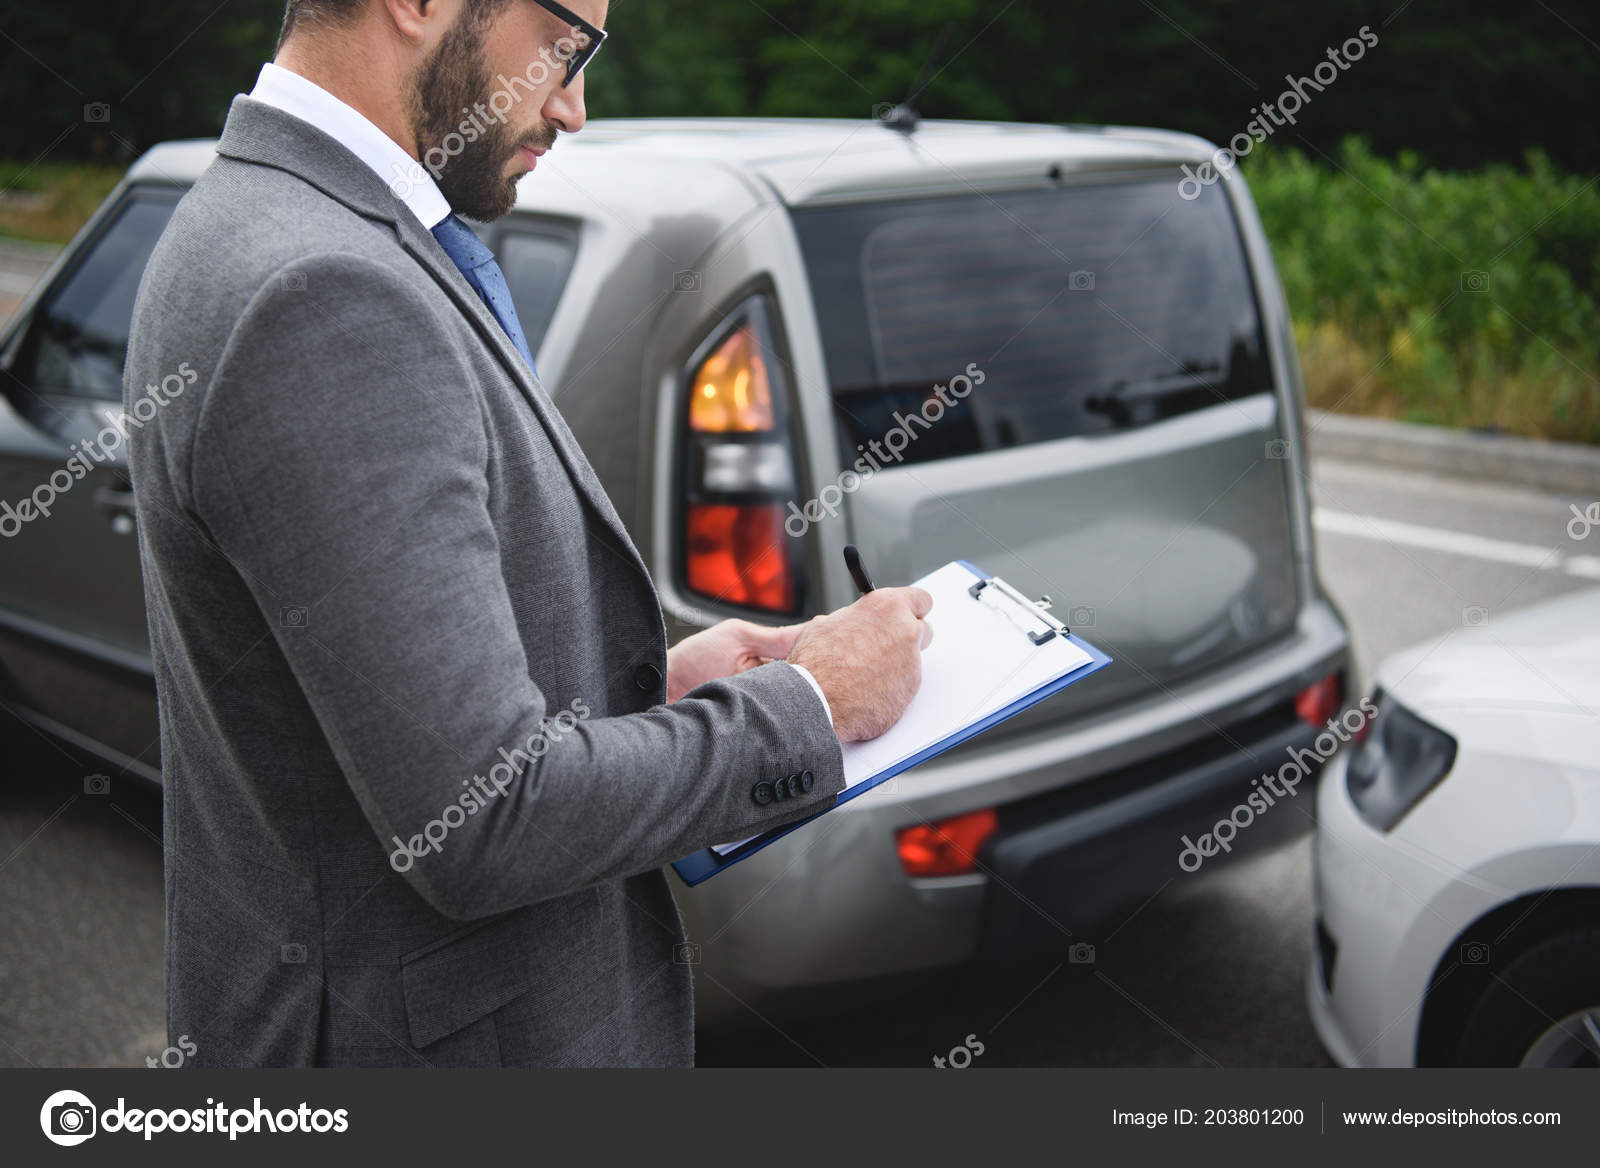 Car Insurance After Accident >> Side View Man Writing Something Car Insurance Car Accident